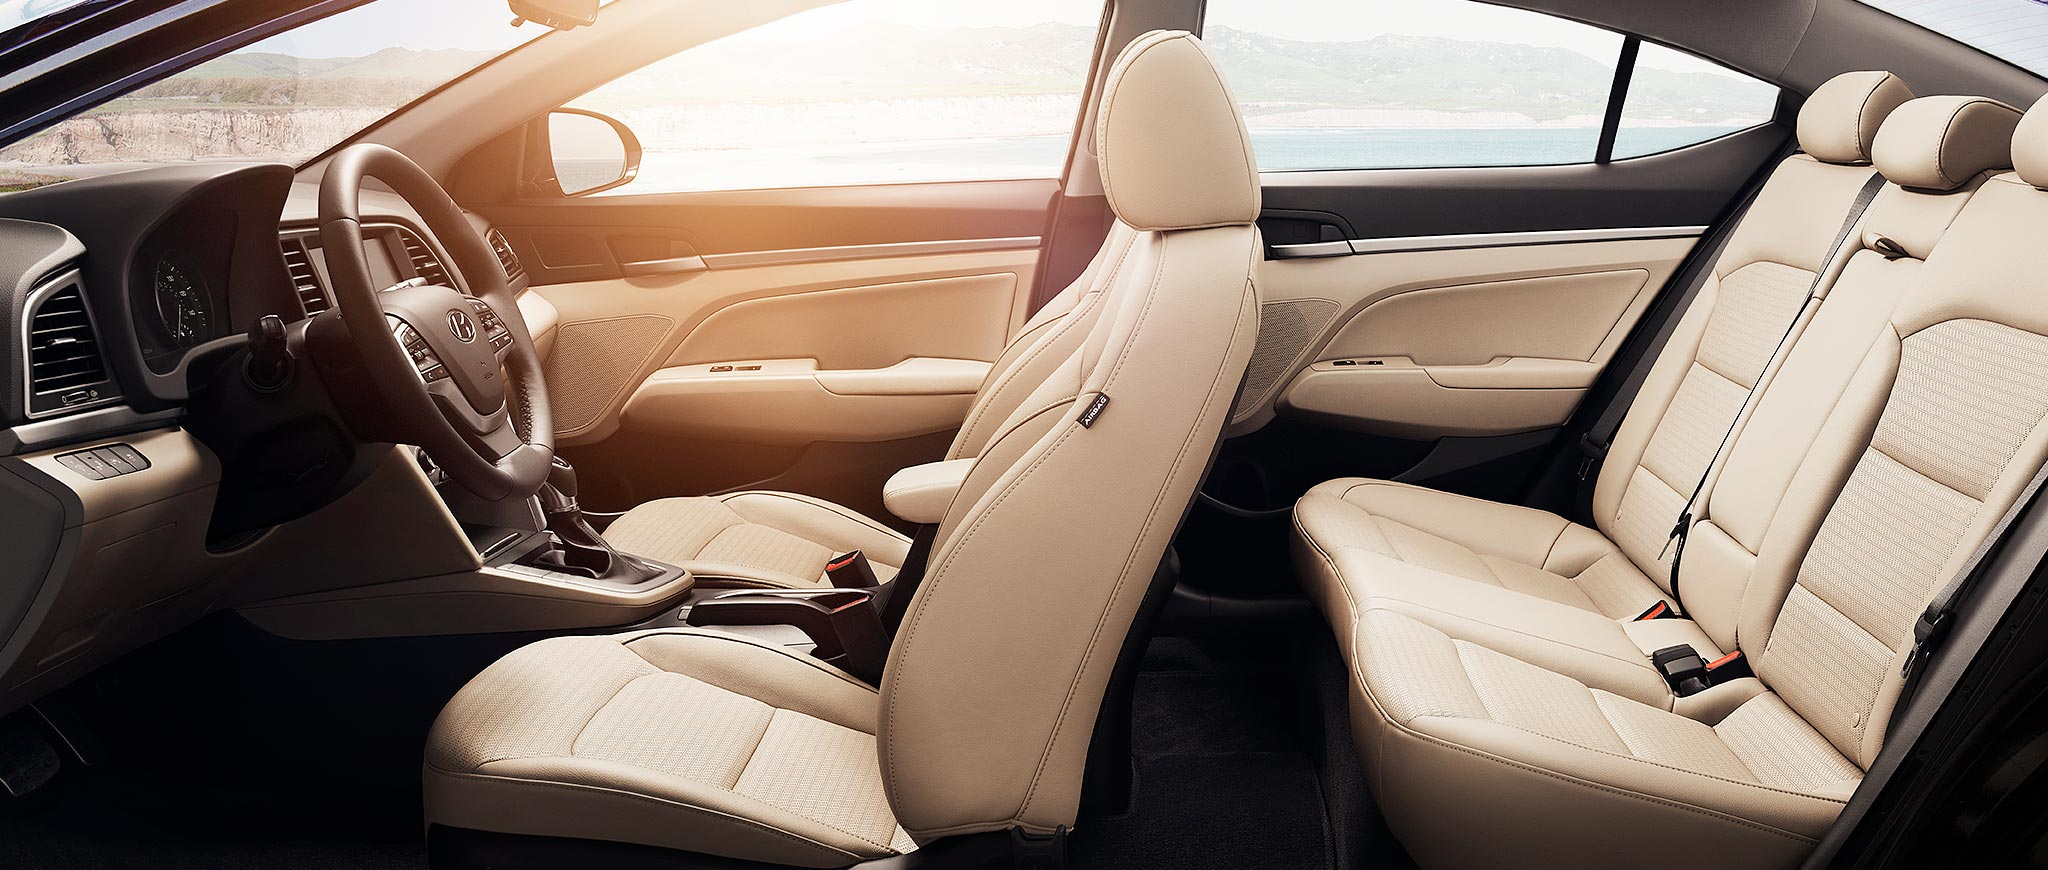 2017 Hyundai Elantra Seating